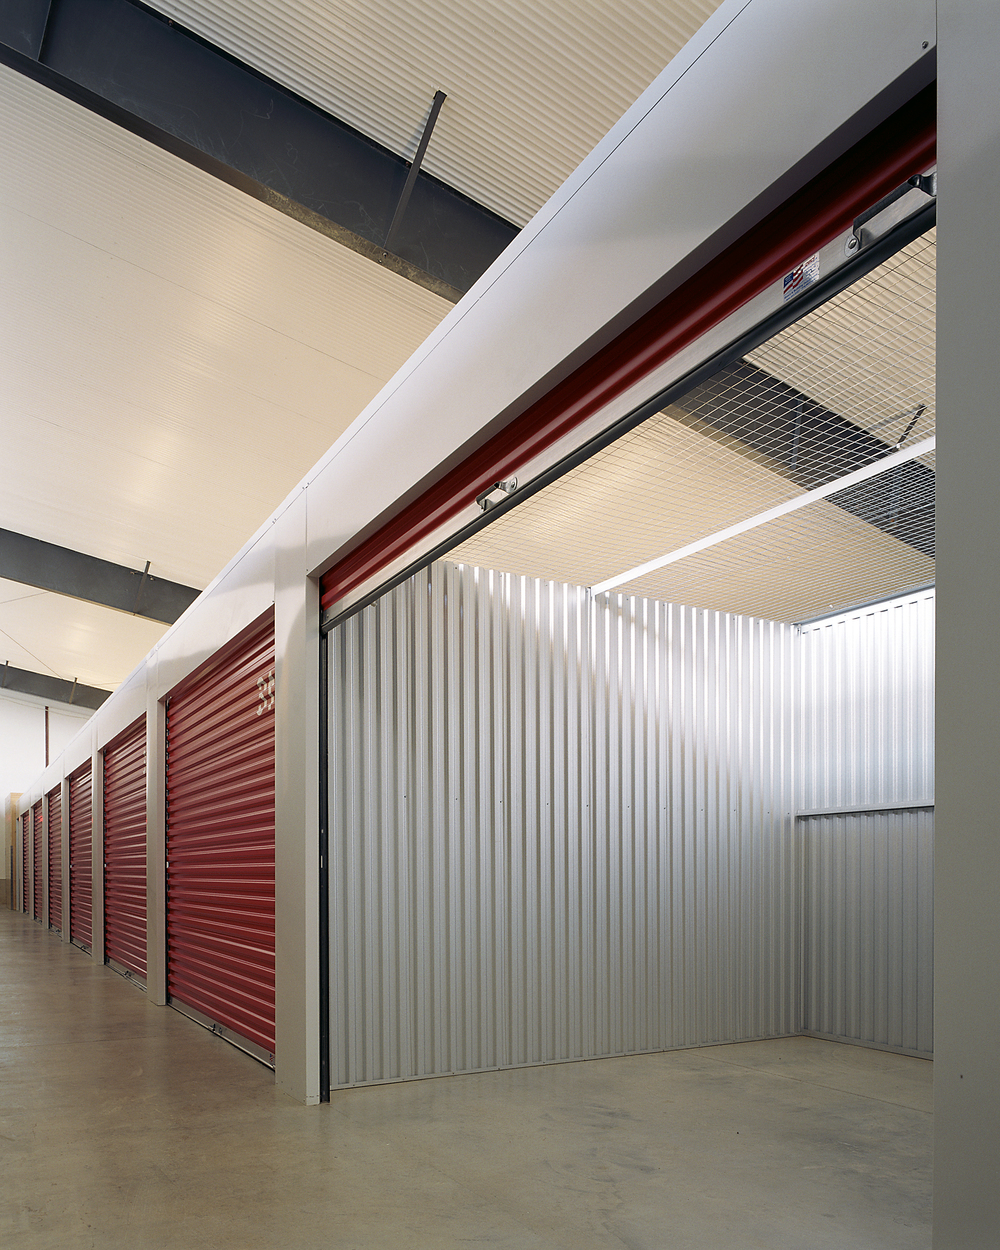 3 501508 interior of storage unit and hall.jpg